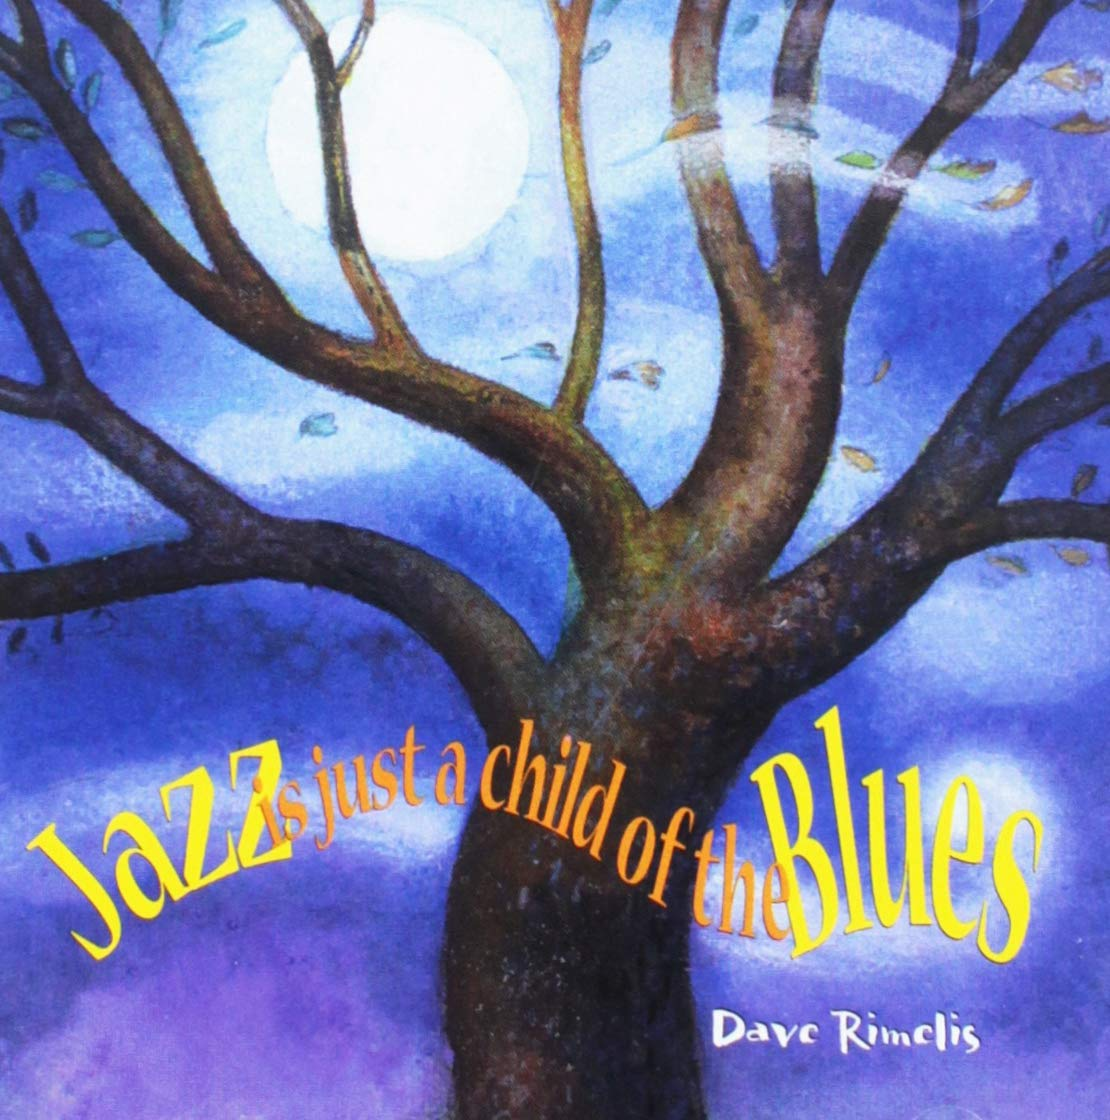 Jazz Is Just a Child of the Blues